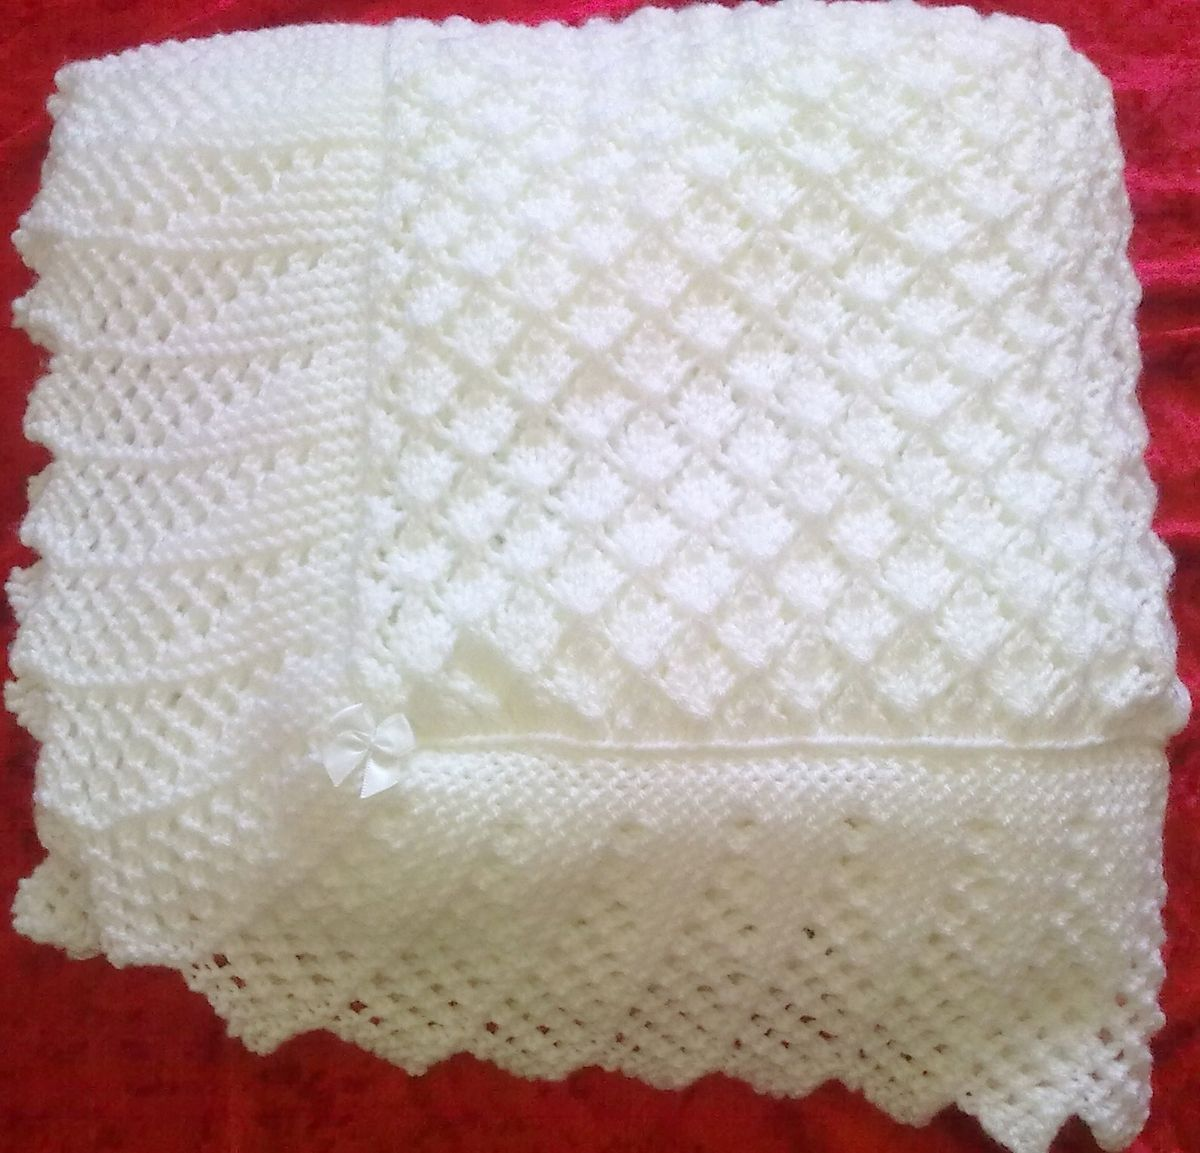 Knitting Patterns For A Baby Shawl : Stunning New Hand Knitted Baby Shawl Blanket 36x36 Ins i love knitting ...